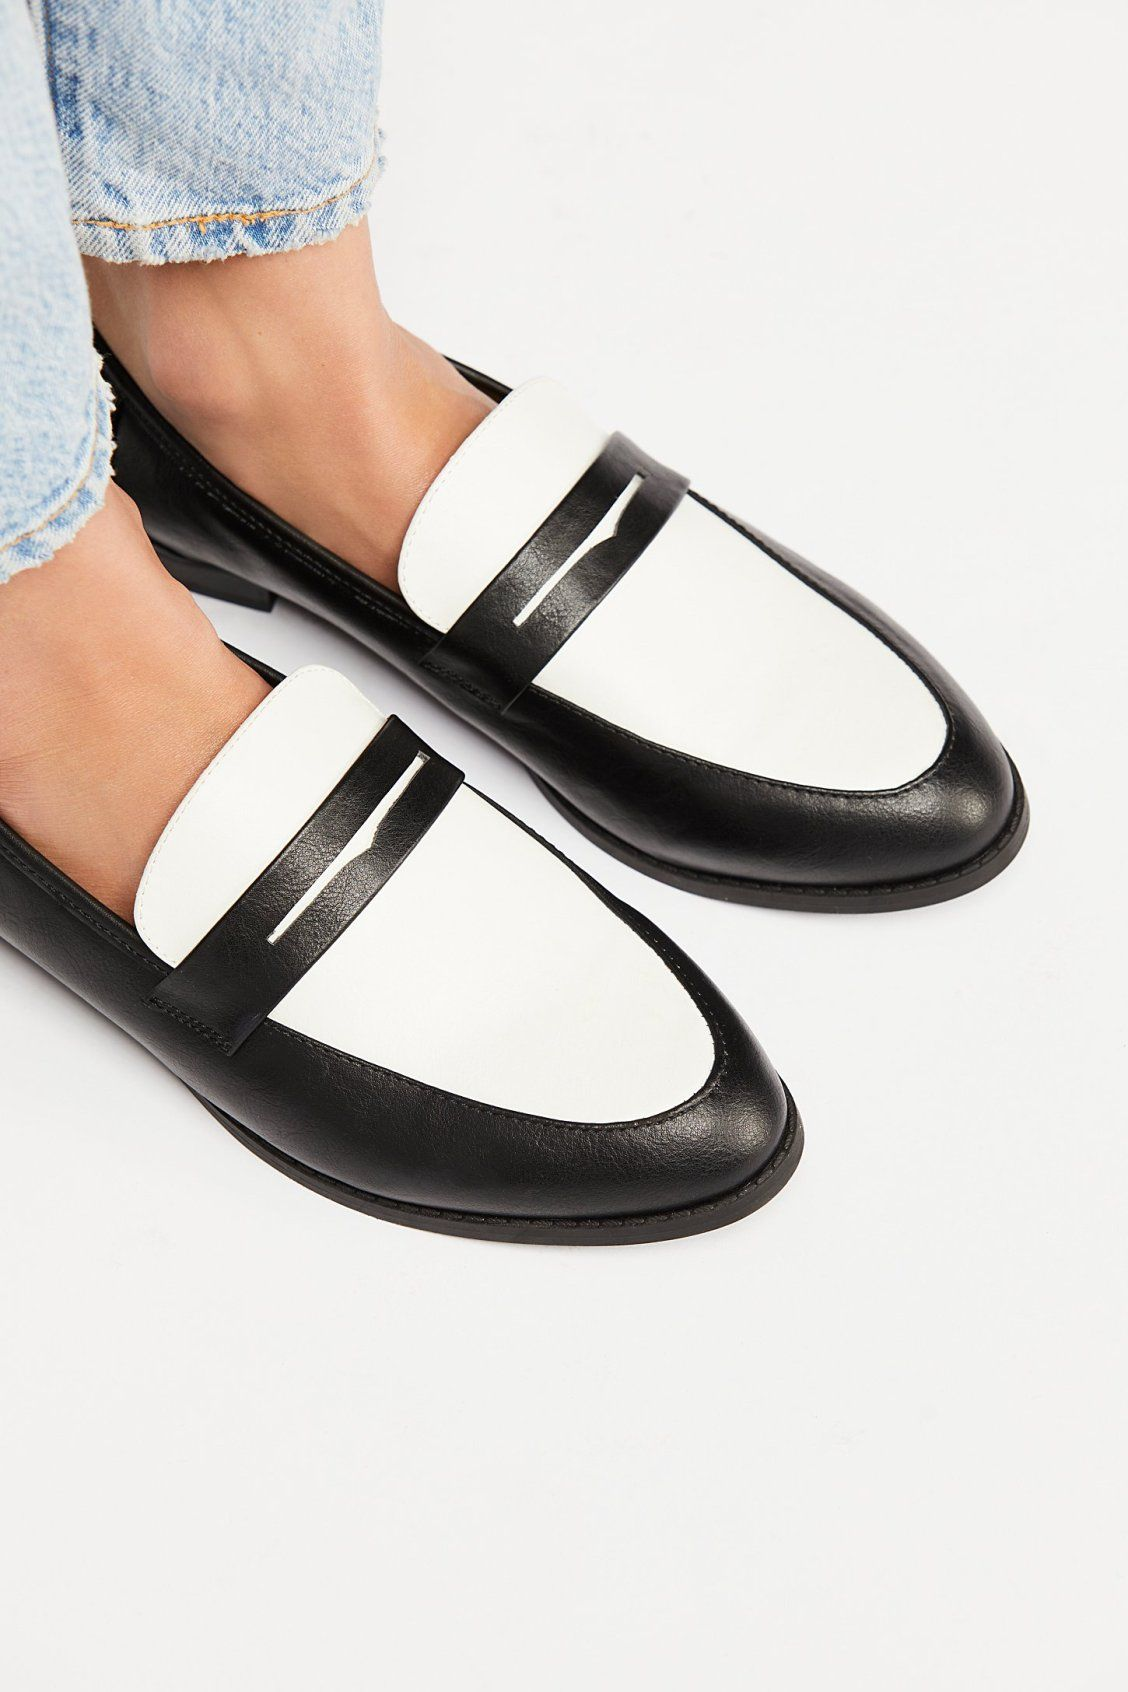 best seller cheap price clearance buy Lou Lou Penny Loafer shopping online free shipping under 70 dollars EvizGfsgR9